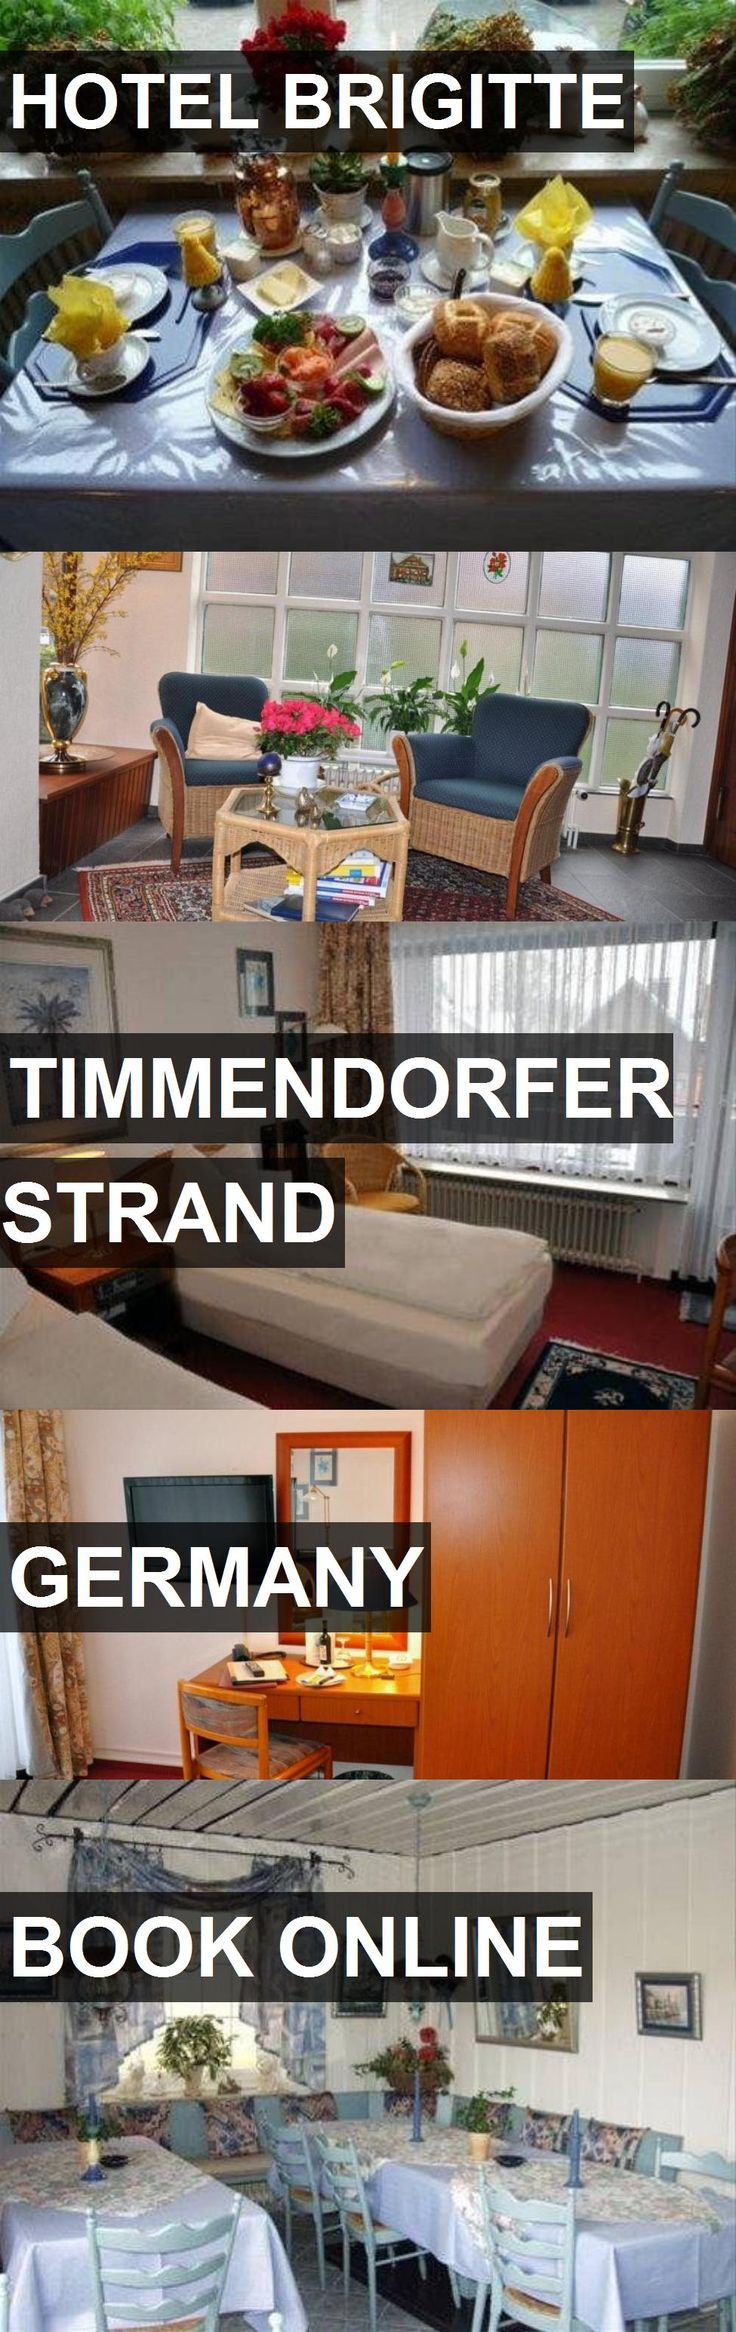 HOTEL BRIGITTE in Timmendorfer Strand, Germany. For more information, photos, reviews and best prices please follow the link. #Germany #TimmendorferStrand #travel #vacation #hotel